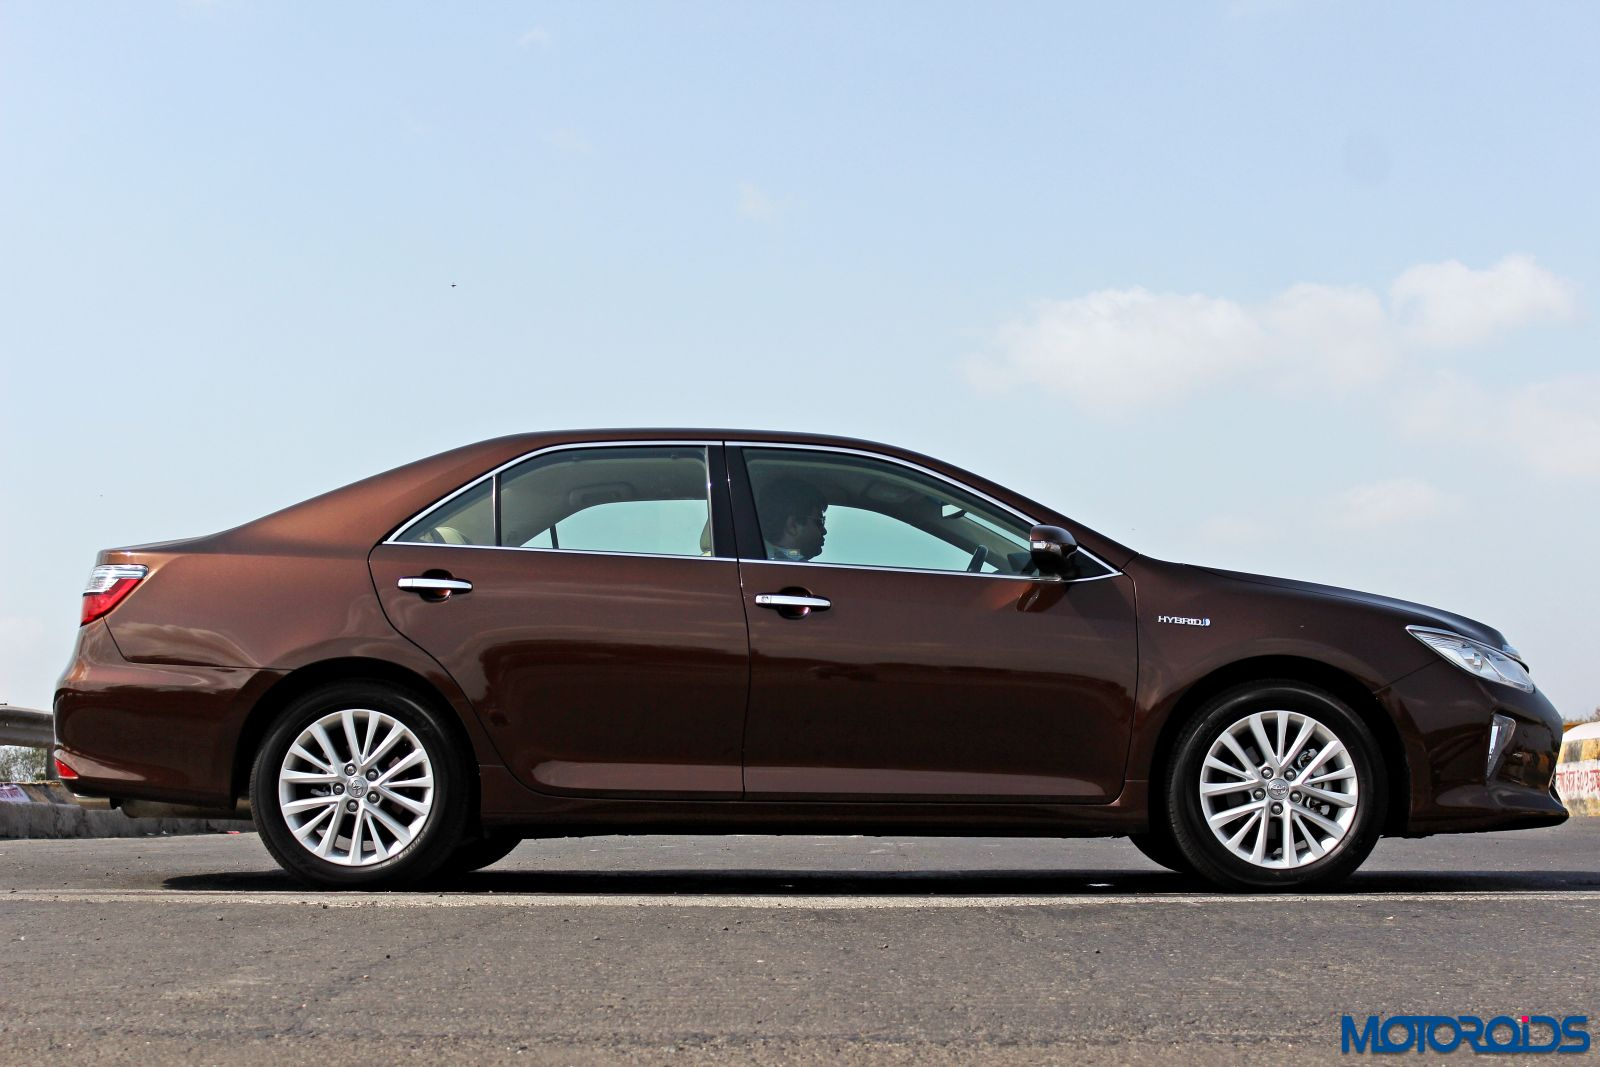 new 2015 toyota camry hybrid review virtuous opulence motoroids. Black Bedroom Furniture Sets. Home Design Ideas